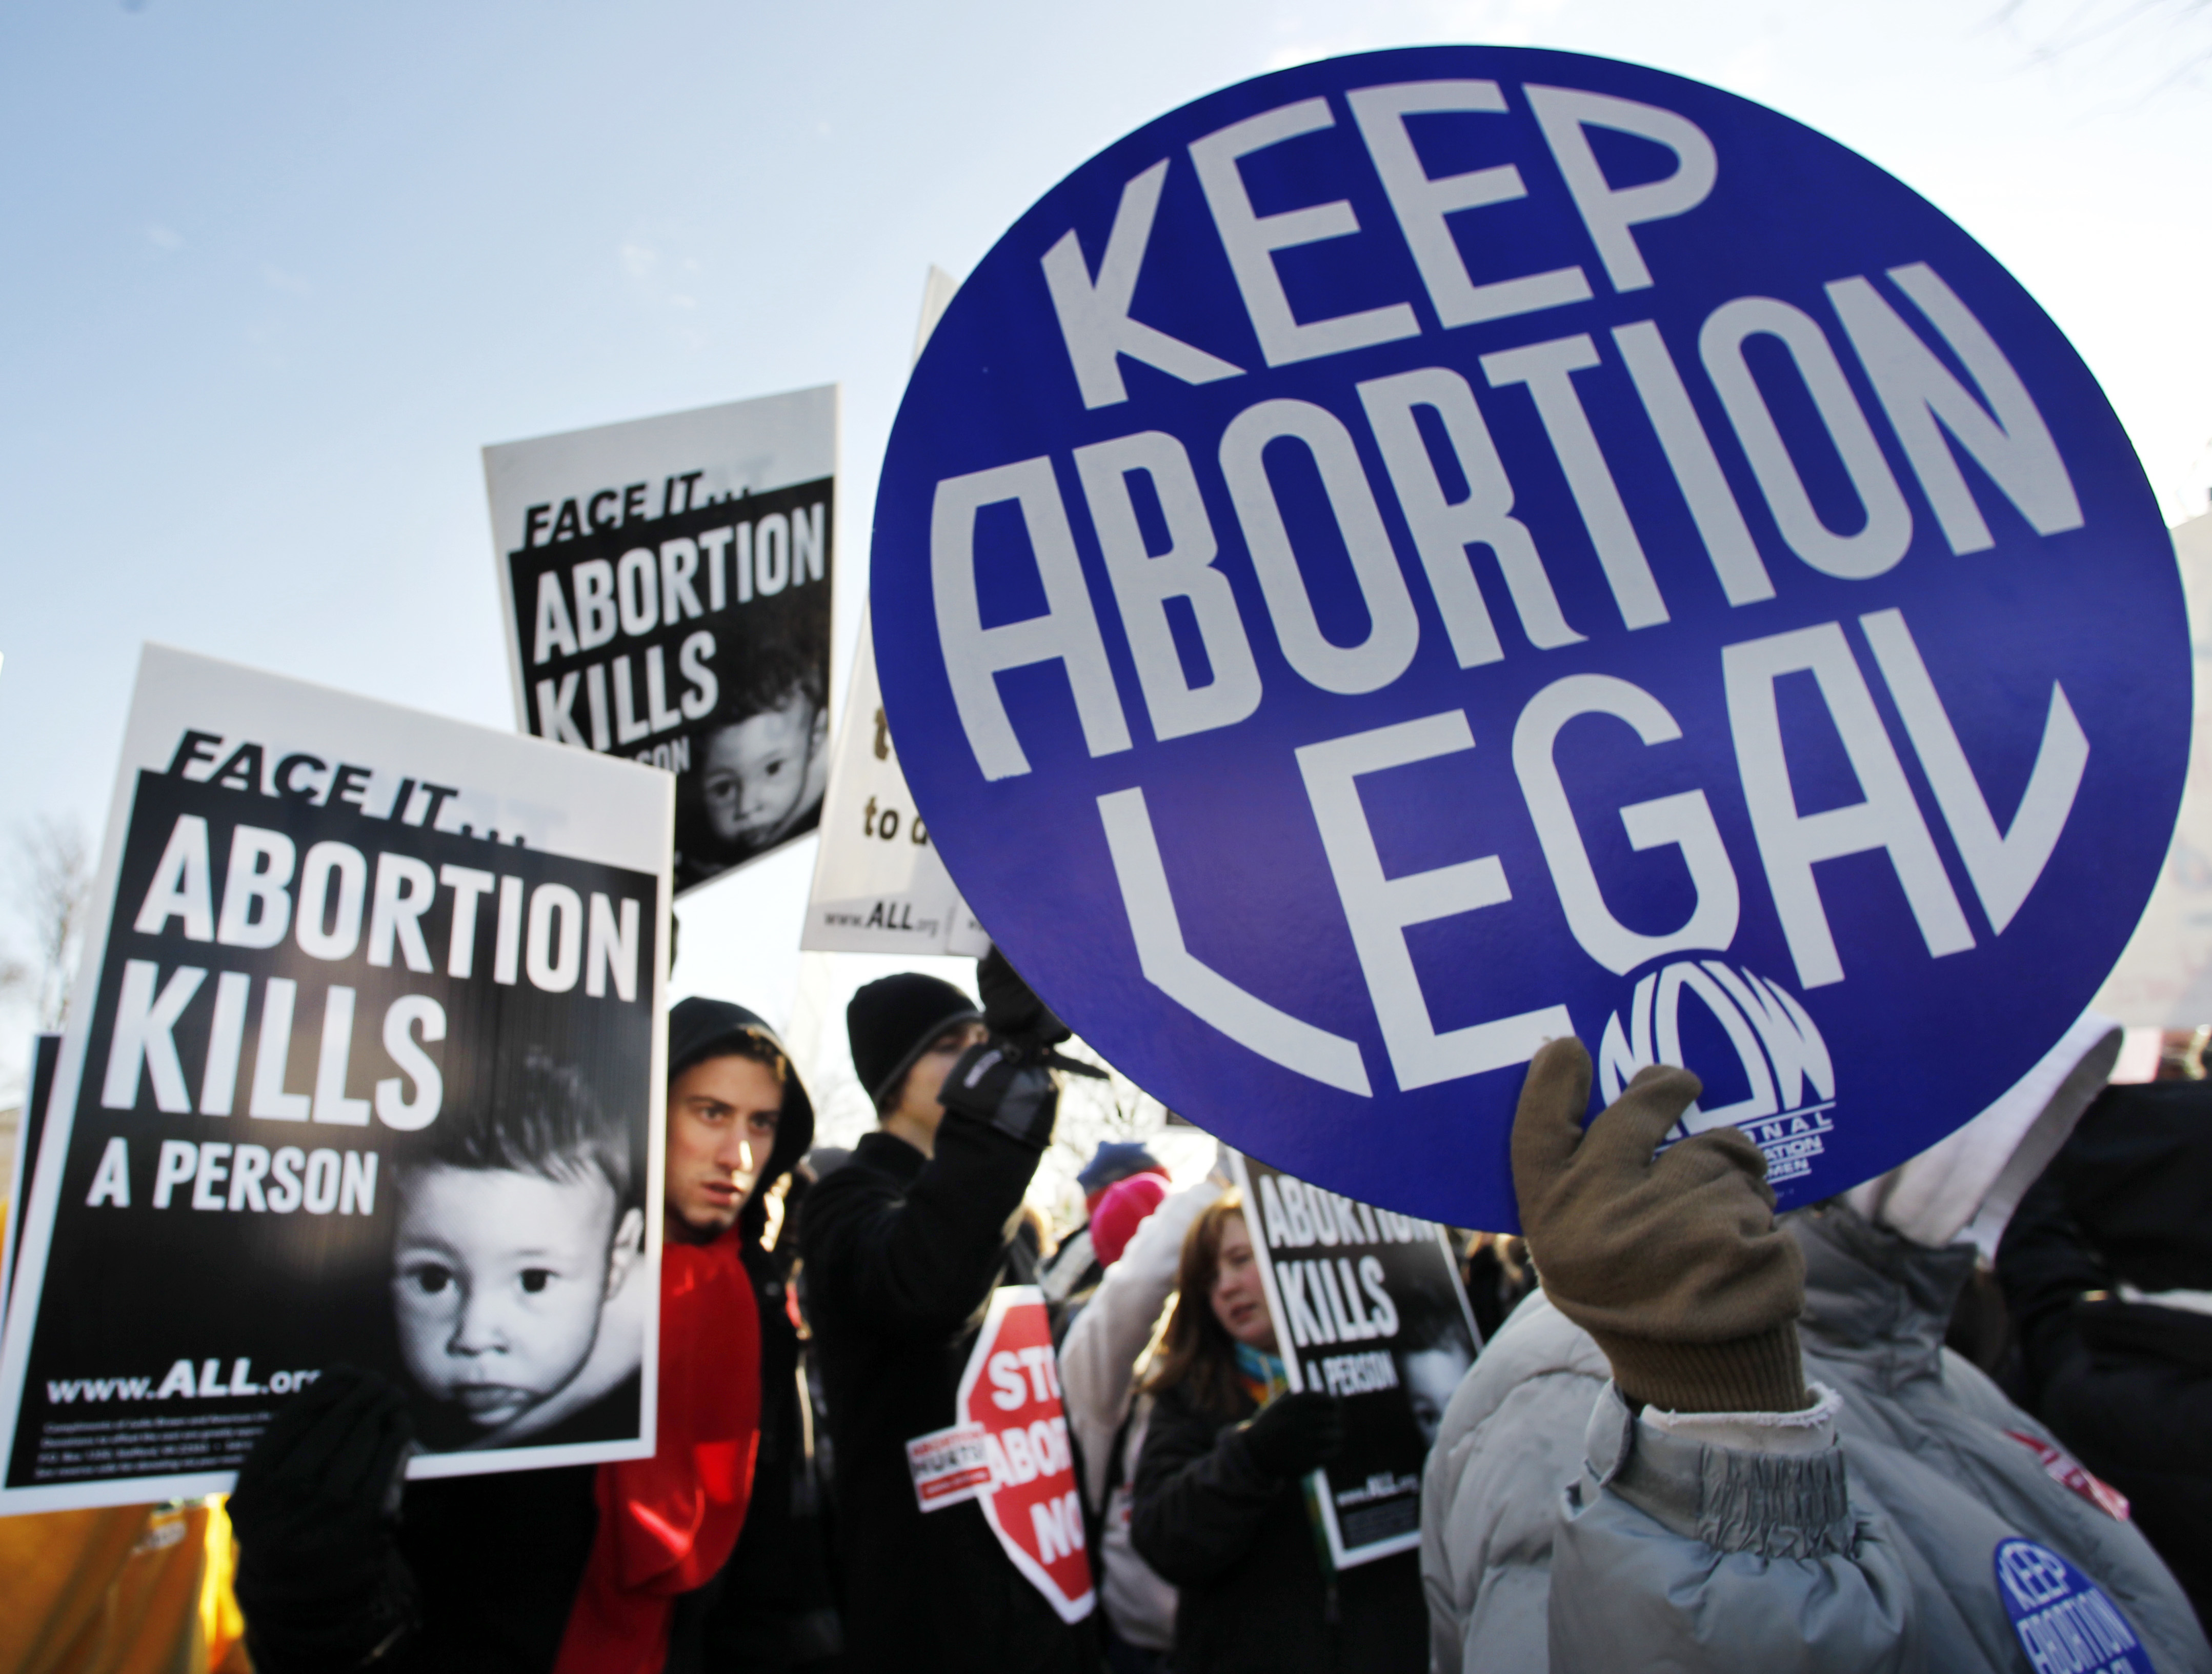 Anti-abortion and abortion activists stand side by side in front of the U.S. Supreme Court, in Washington, Monday, Jan. 24, 2011, during a rally against Roe v. Wade on the anniversary of the U.S. Supreme Court decision.